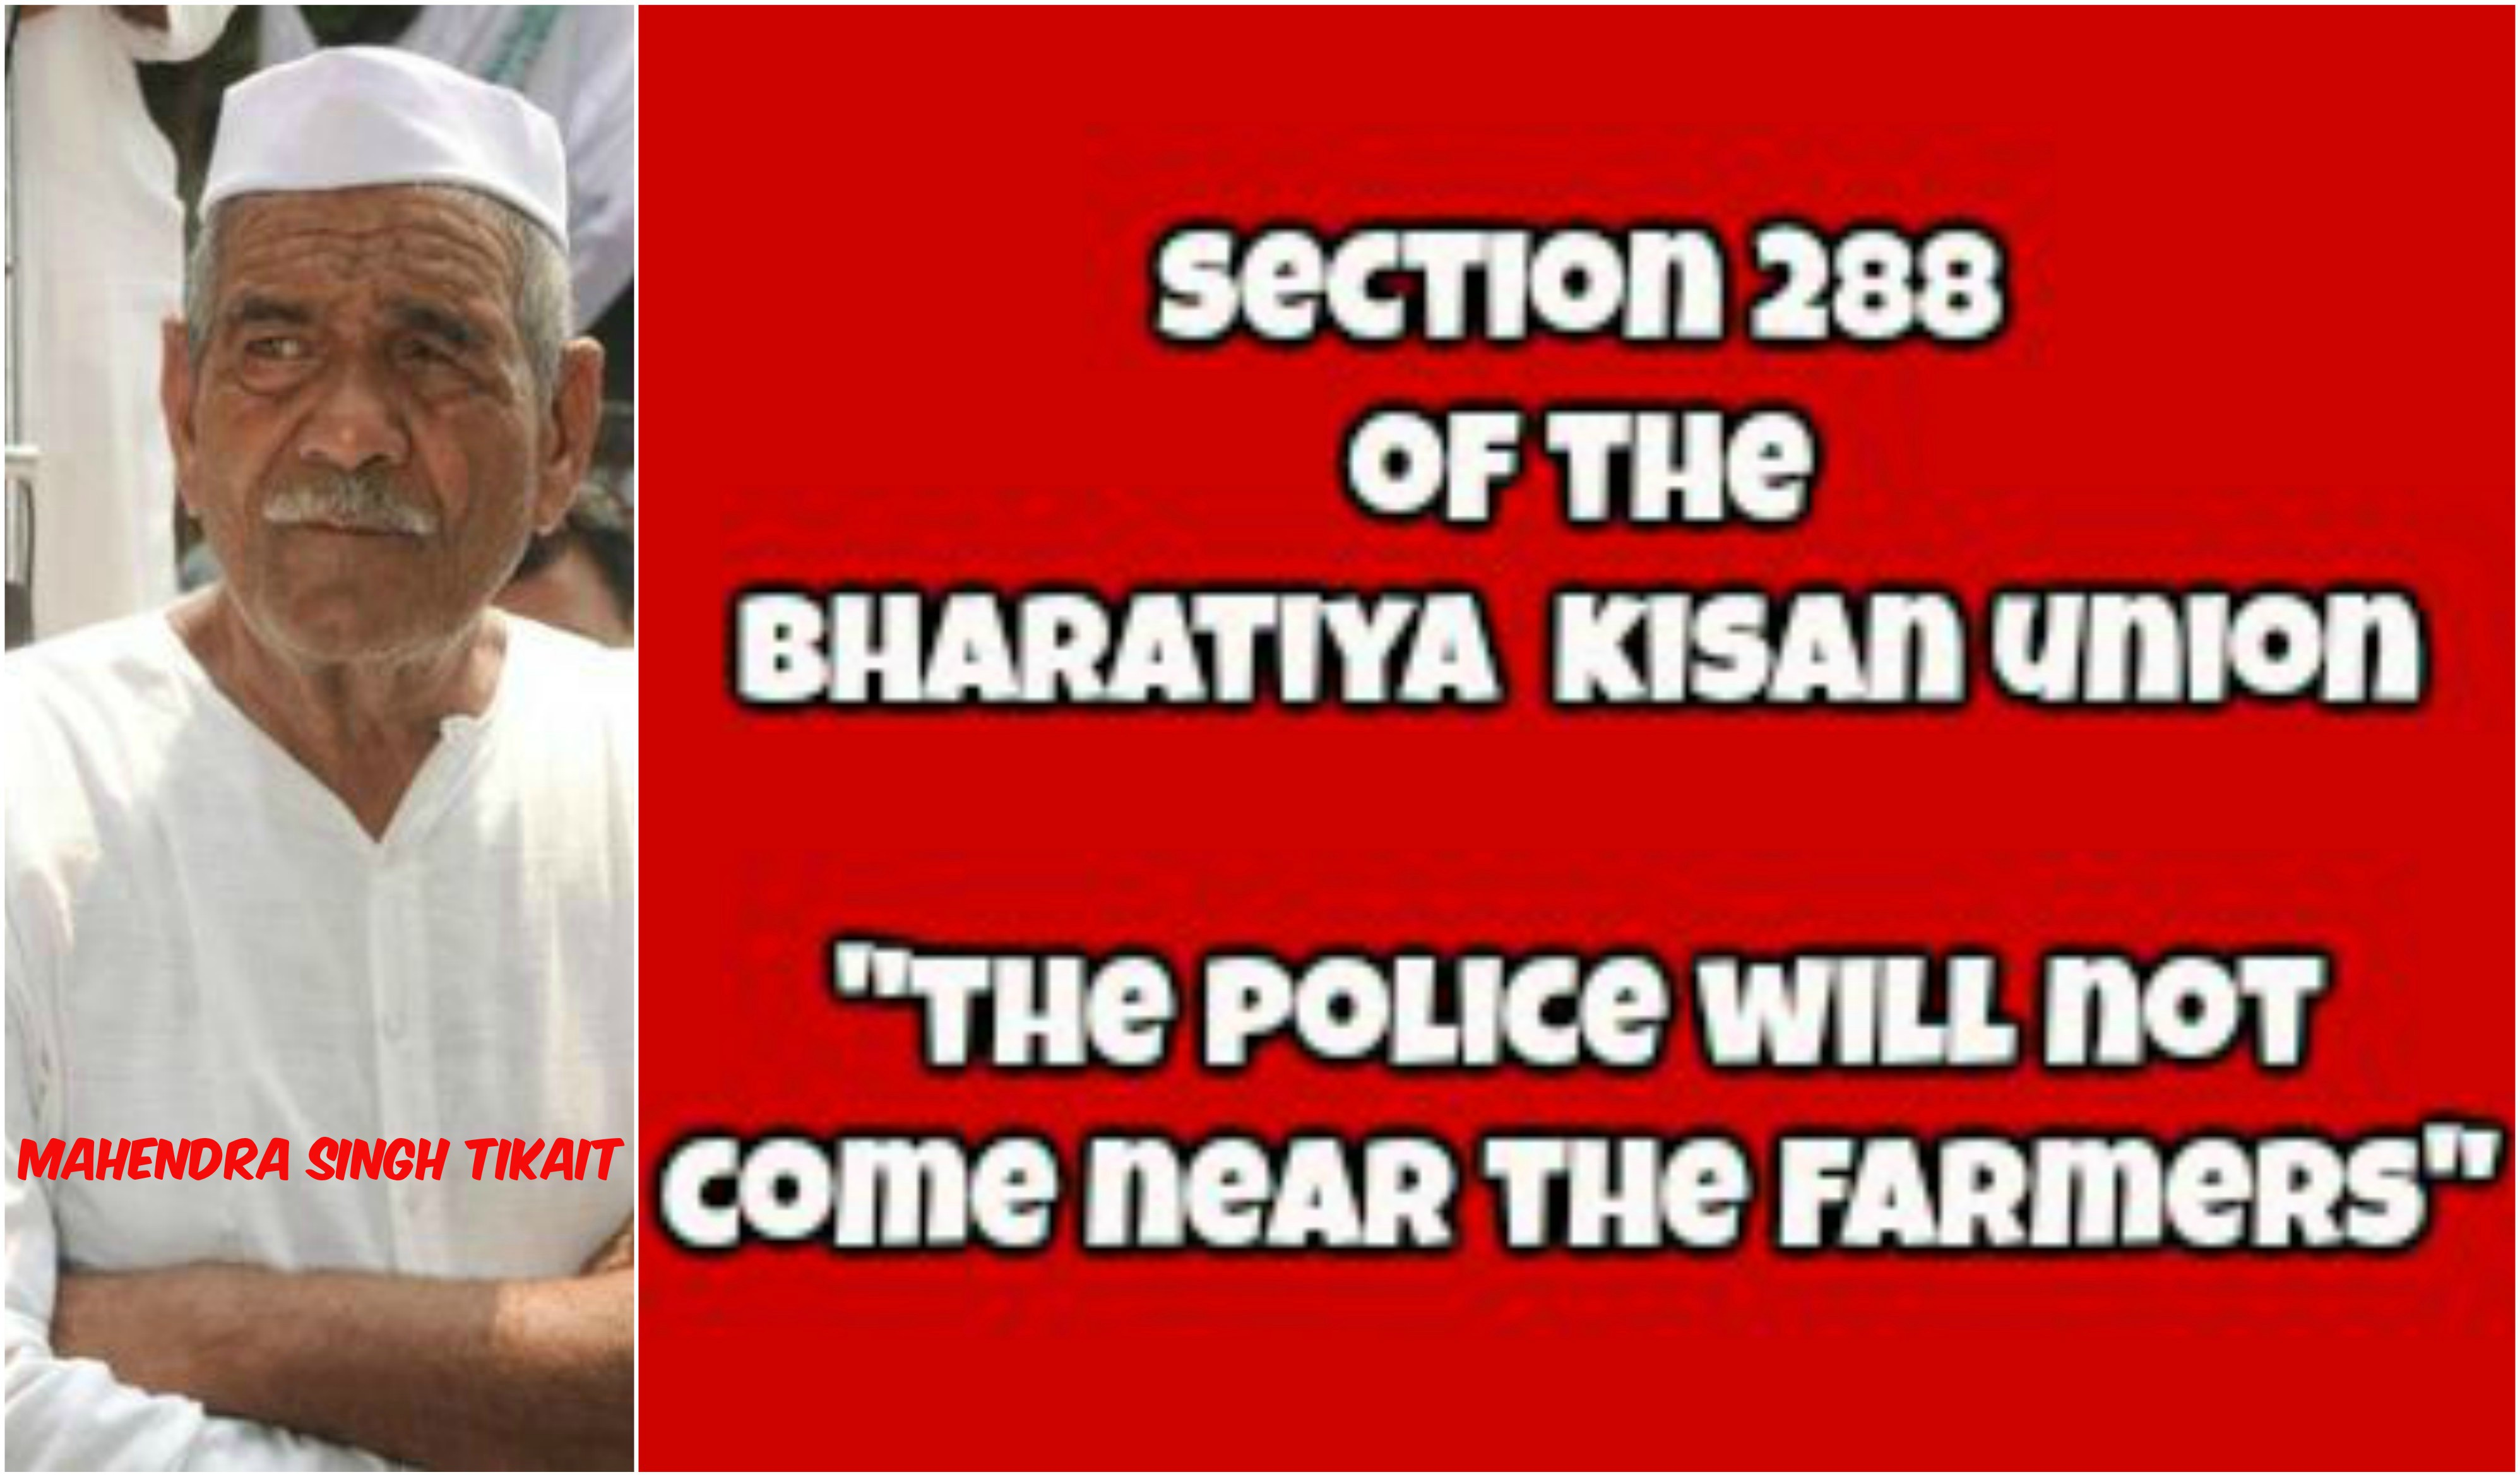 Farmers Impose @@@Section 288@@@ Of The BKU